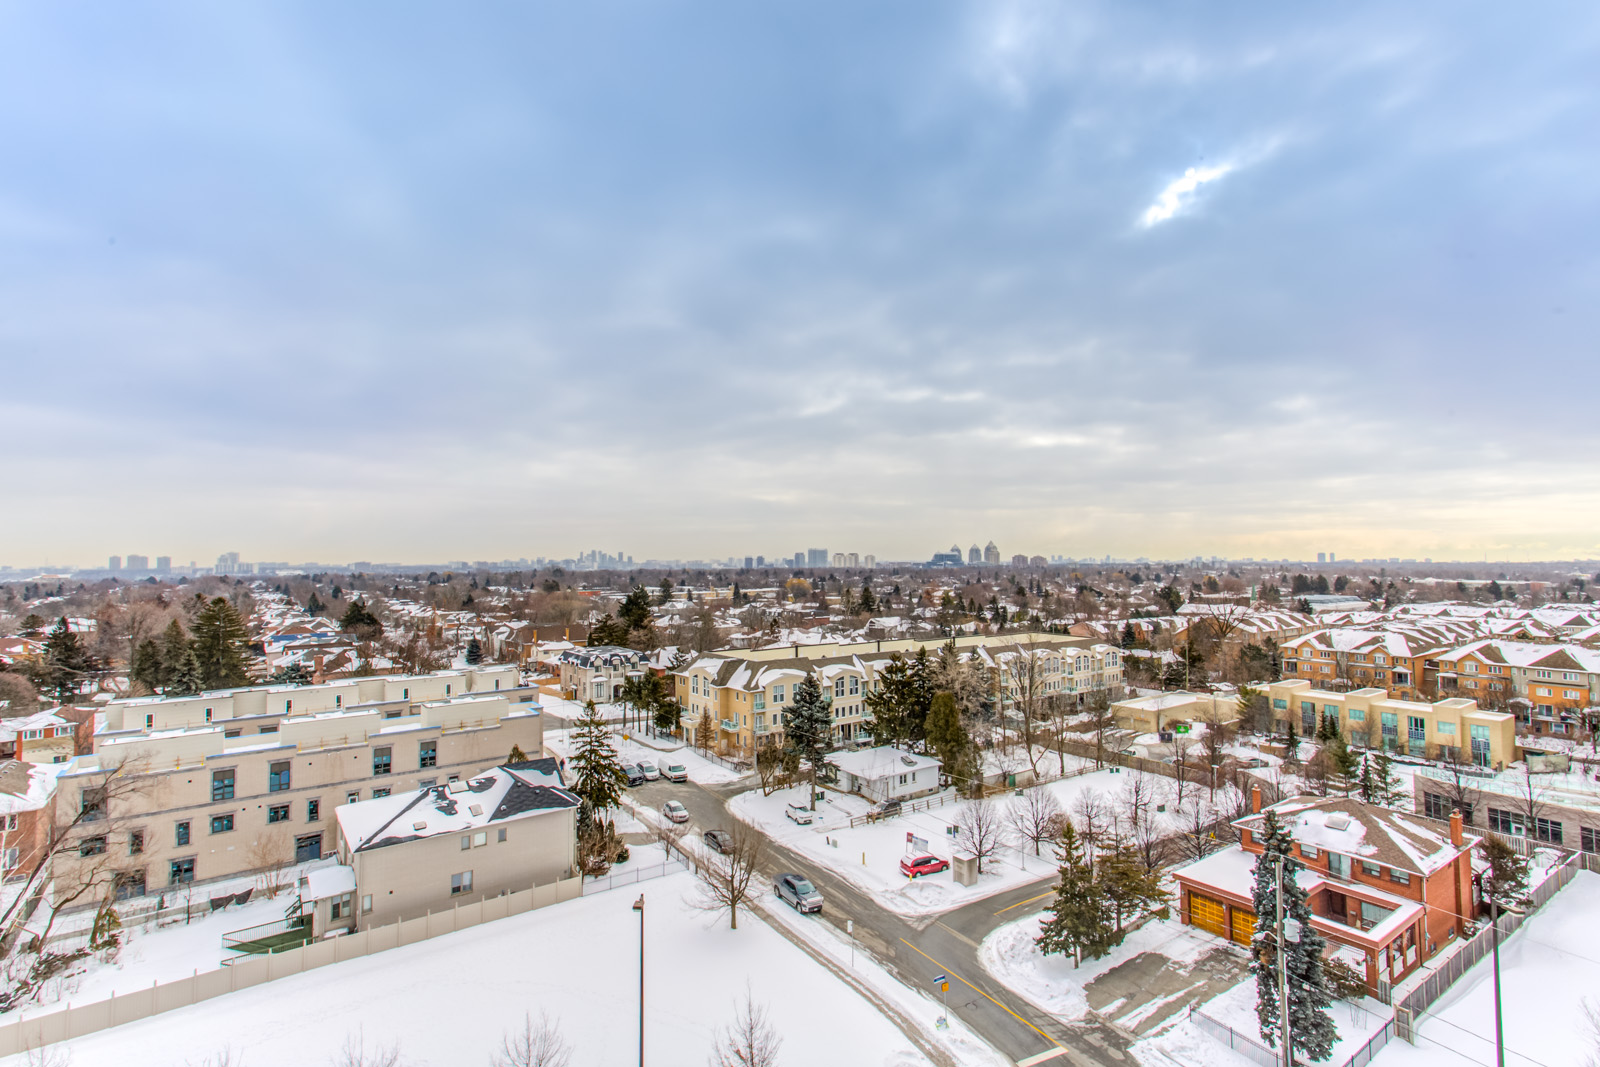 Another balcony view of Willowdale East and North York. It's winter and there's so much snow.